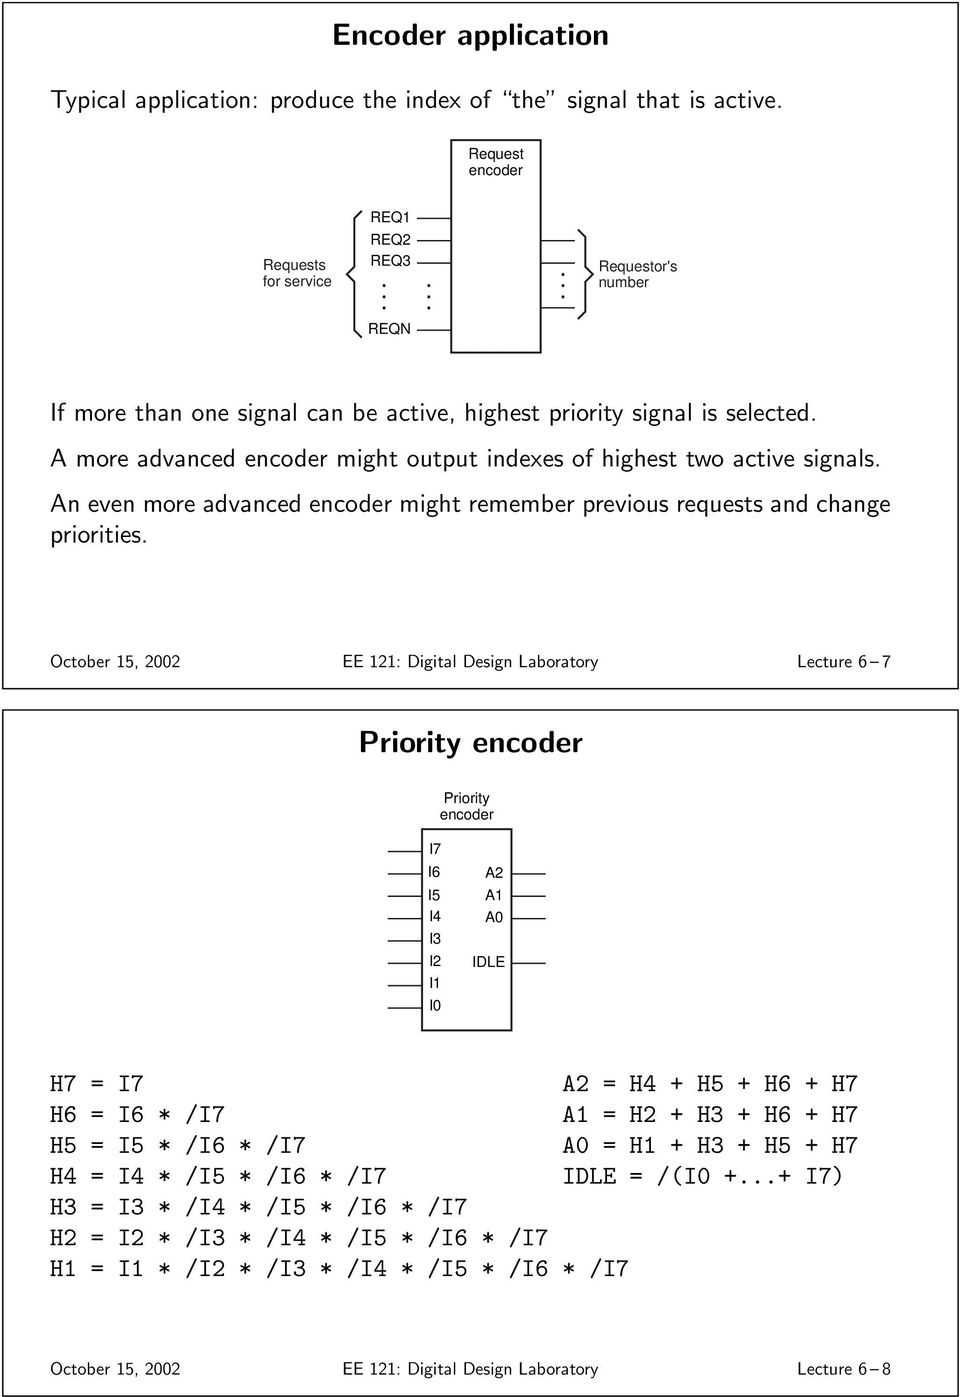 Multiplexers 74x157 Quad 2 To 1 Mux Pdf Logic Diagram Of 8 3 Priority Encoder N Even More Advanced Might Rememer Previous Requests And Change Priorities